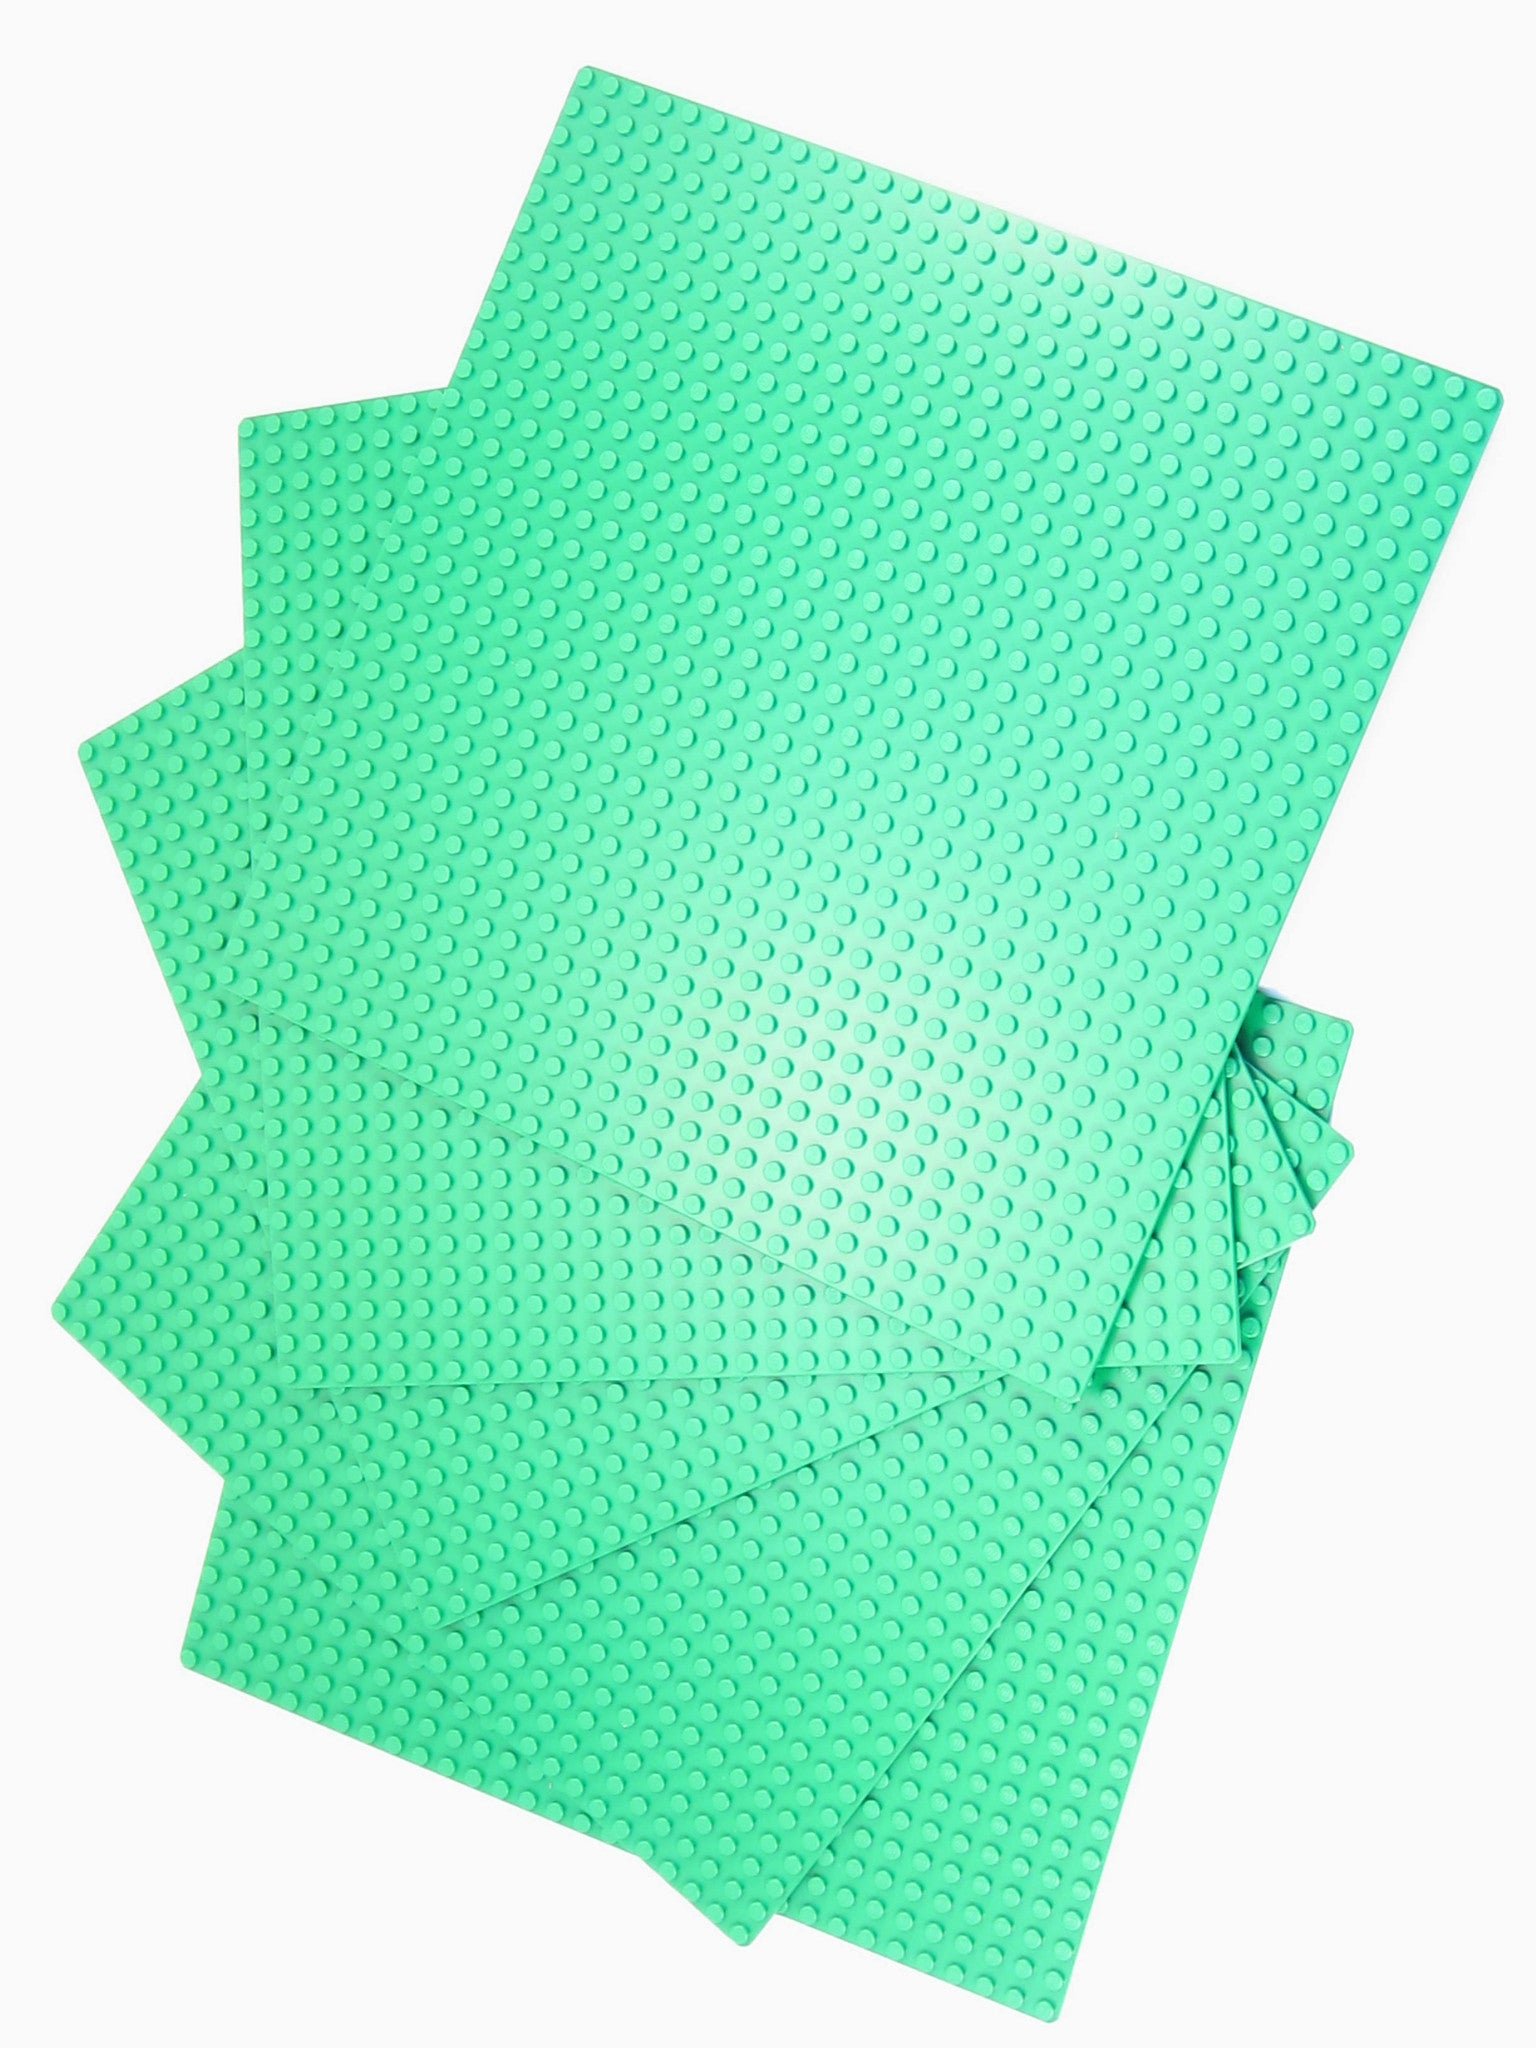 LEGO Green Baseplate 32x32 Lot of 5 Parts Pieces 3811 Base Plate